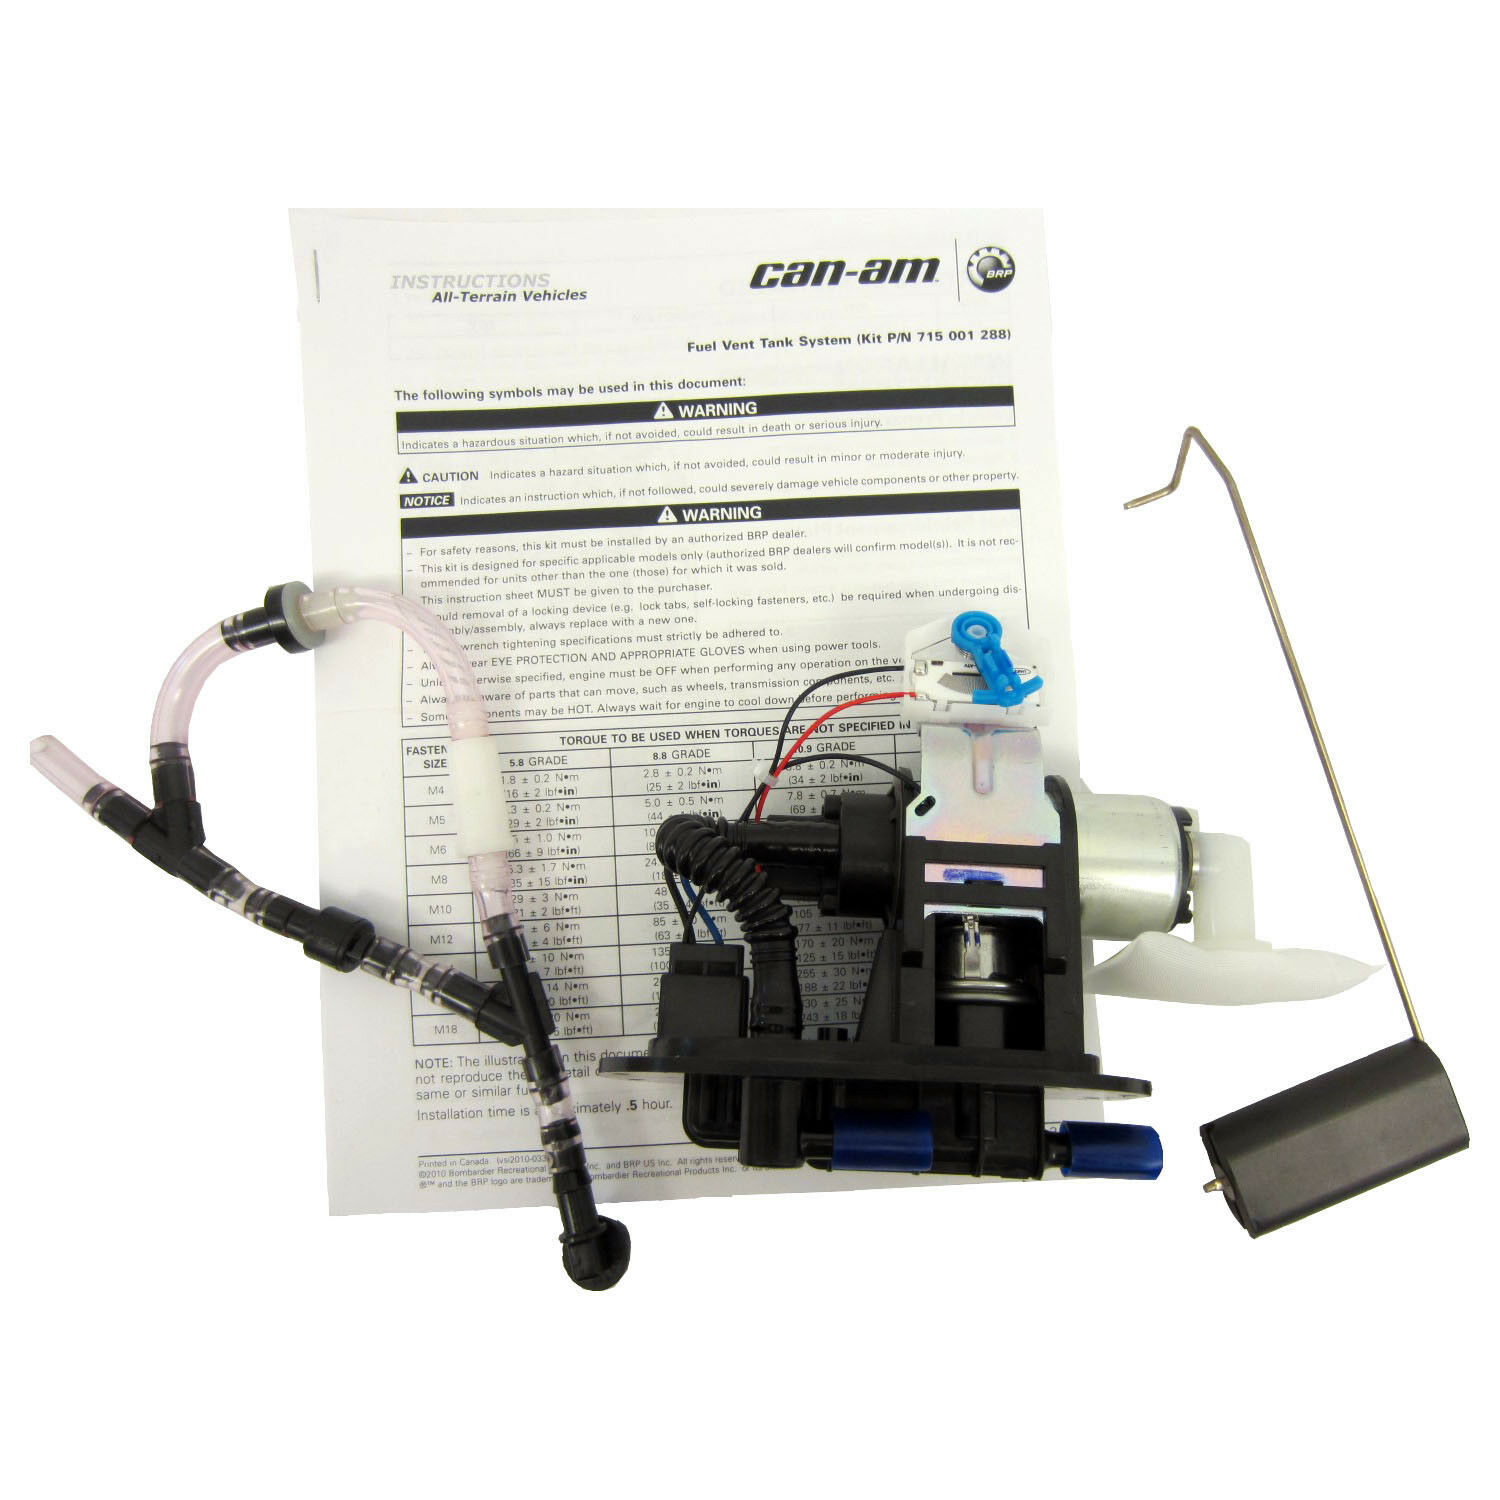 Can-Am New OEM Outlander Renegade ATV Fuel Pump Kit 703500771 400 500 650 800